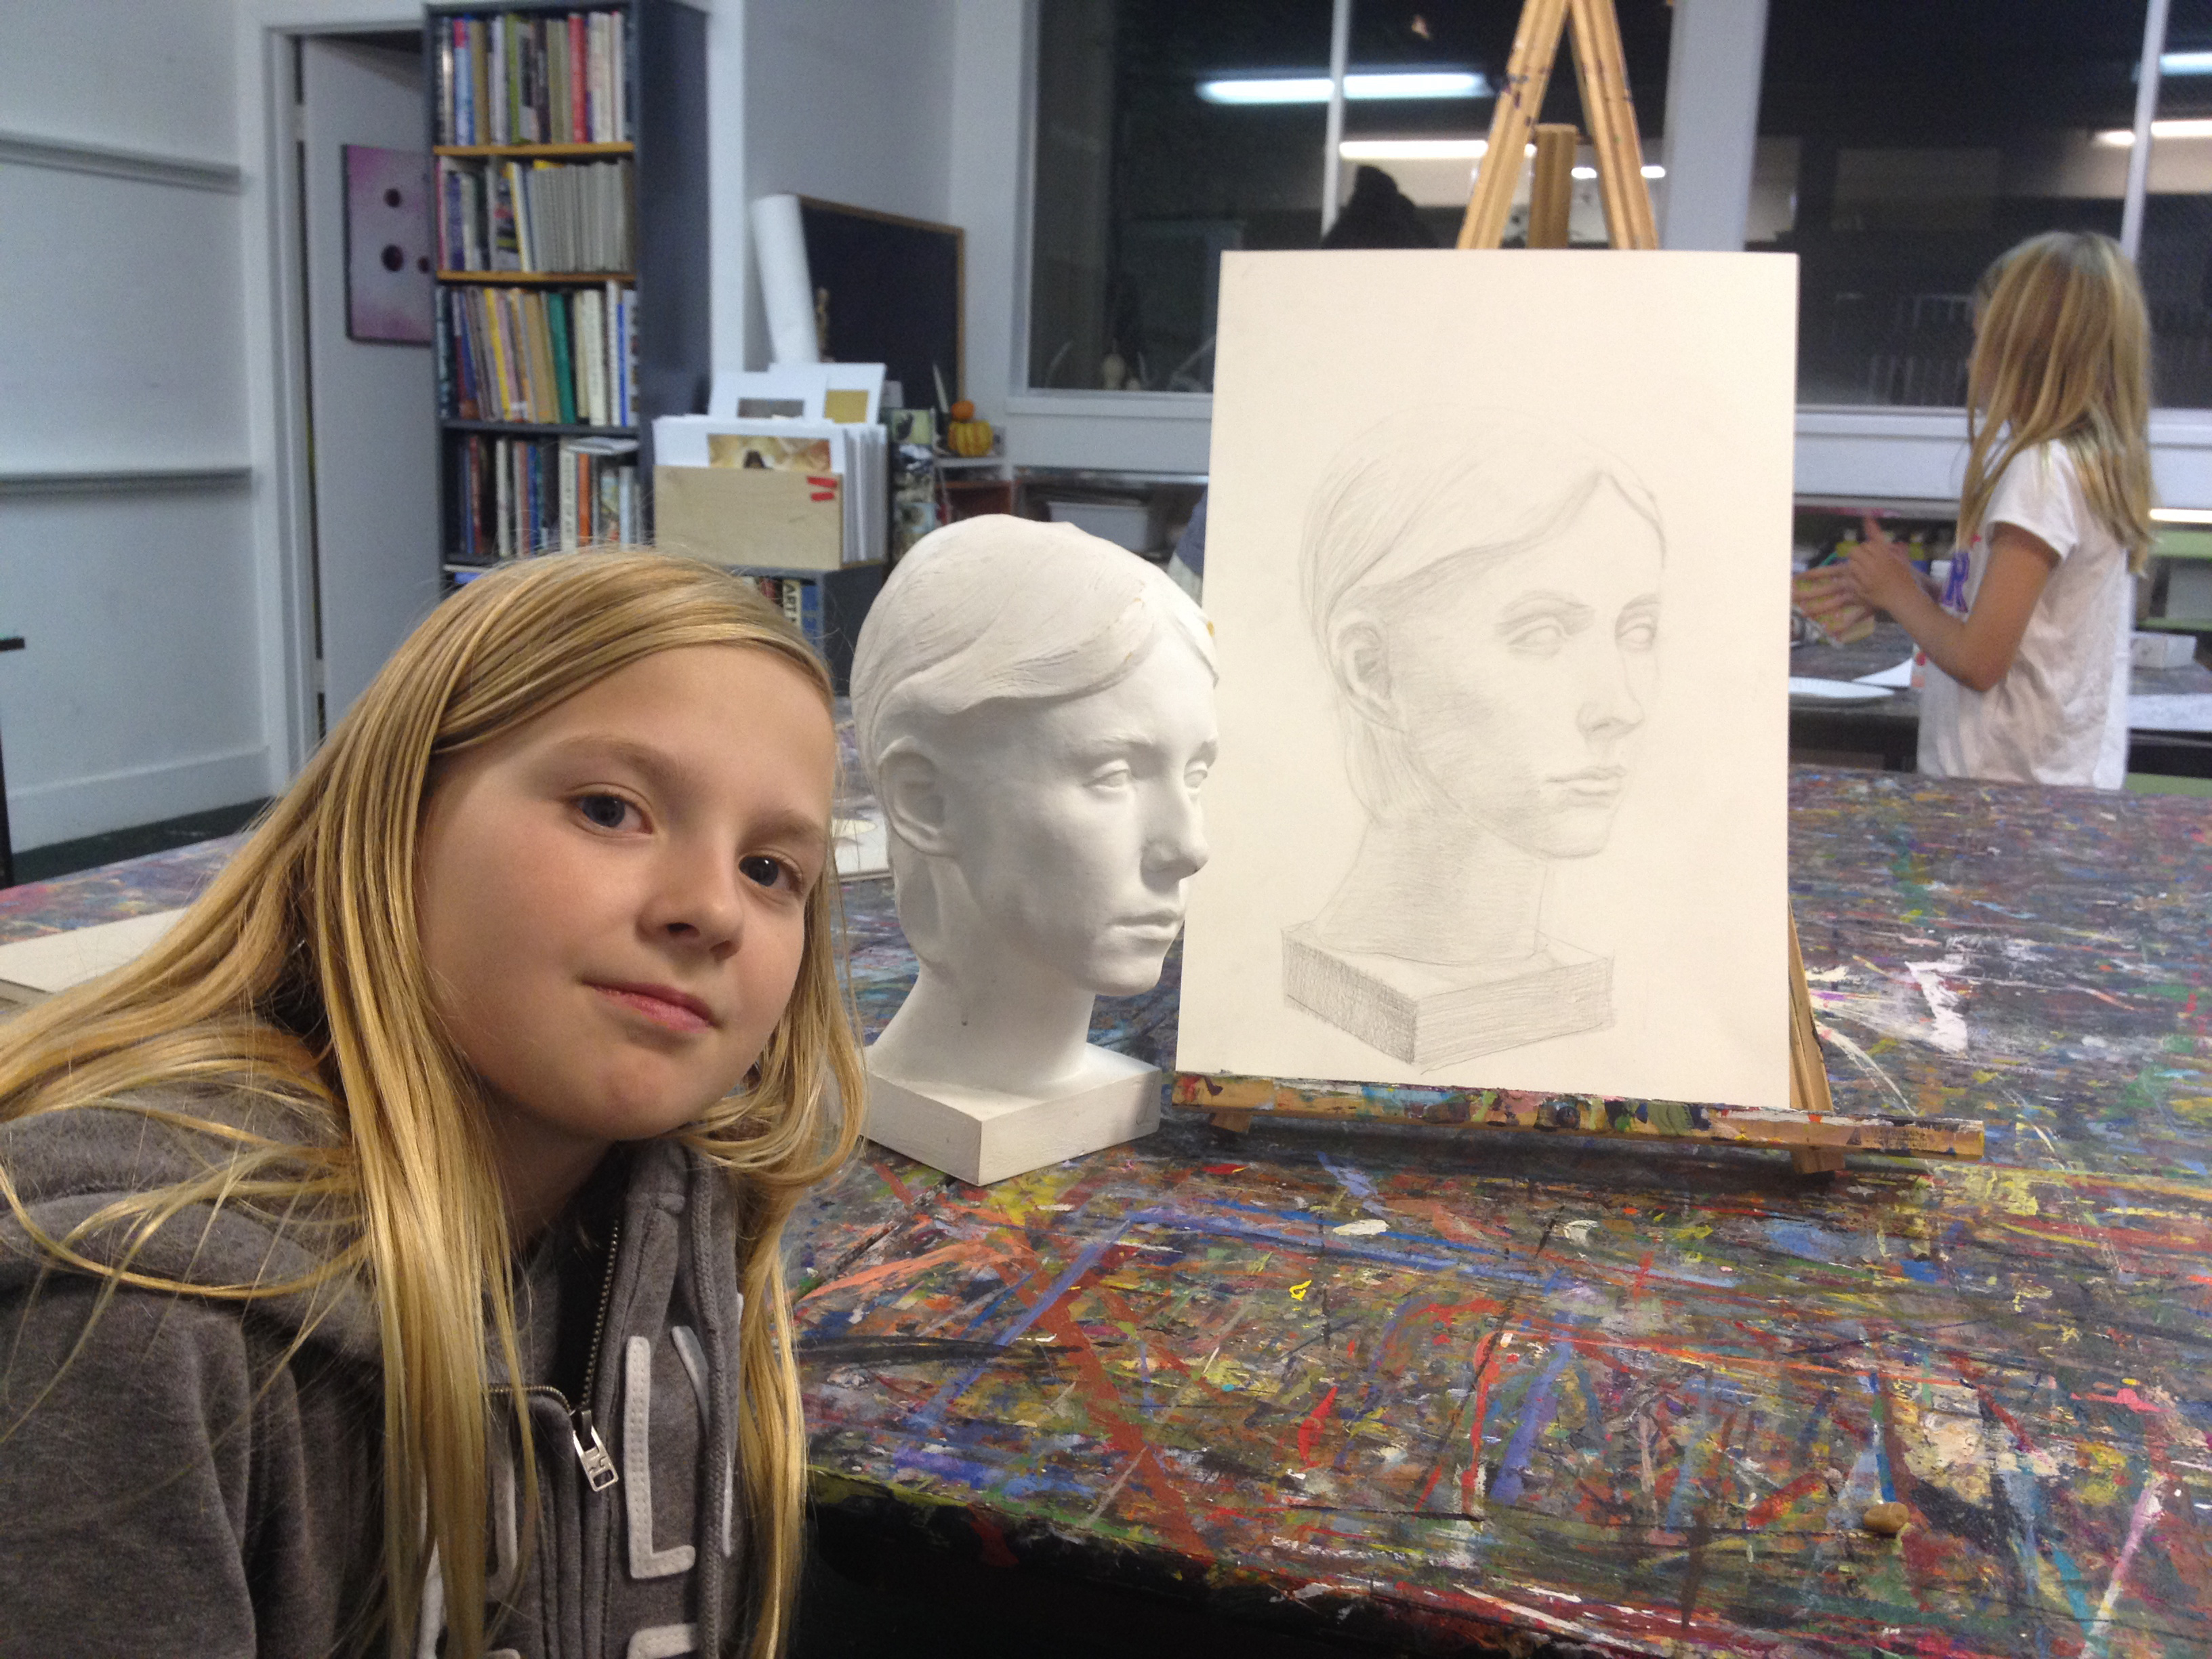 San Jose art classes